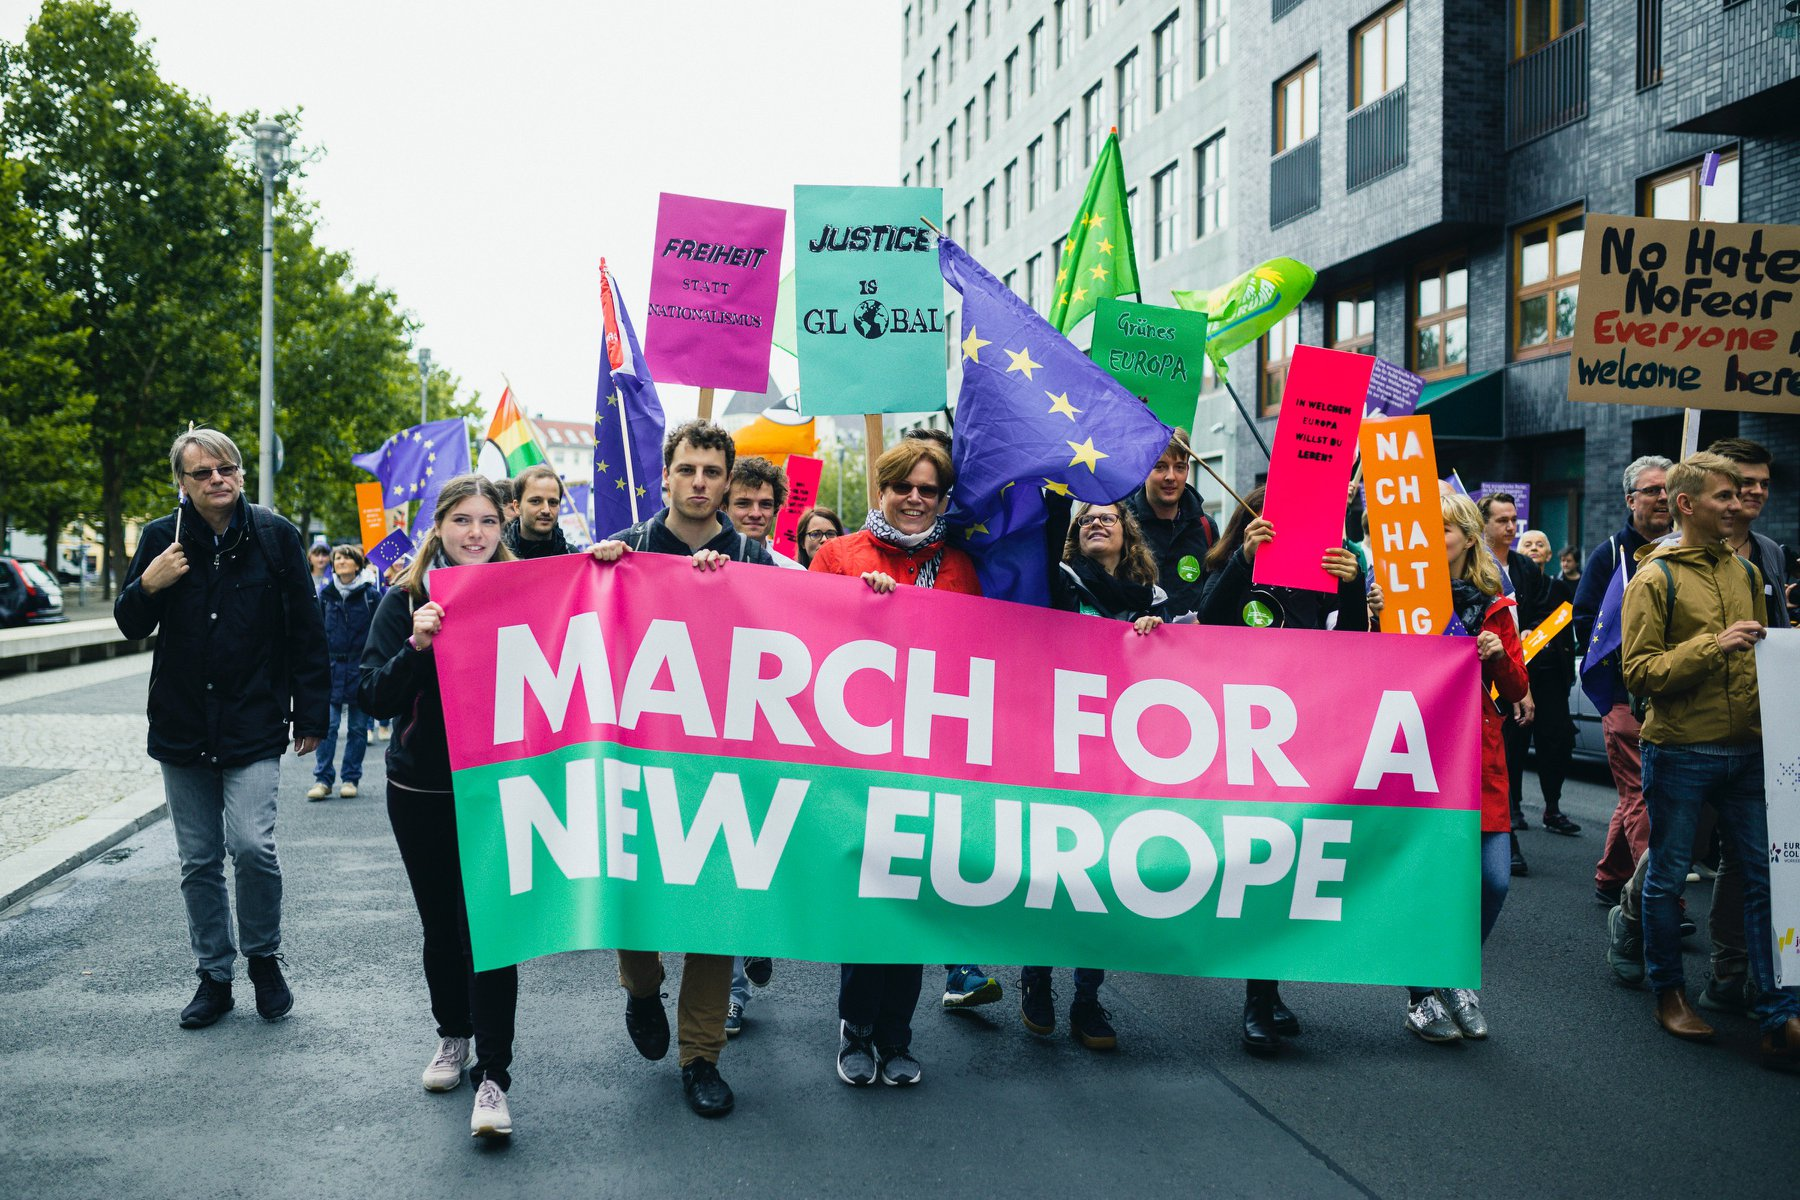 Justice is Global supporters marching in Berlin for a new progressive Europe, June 2018.